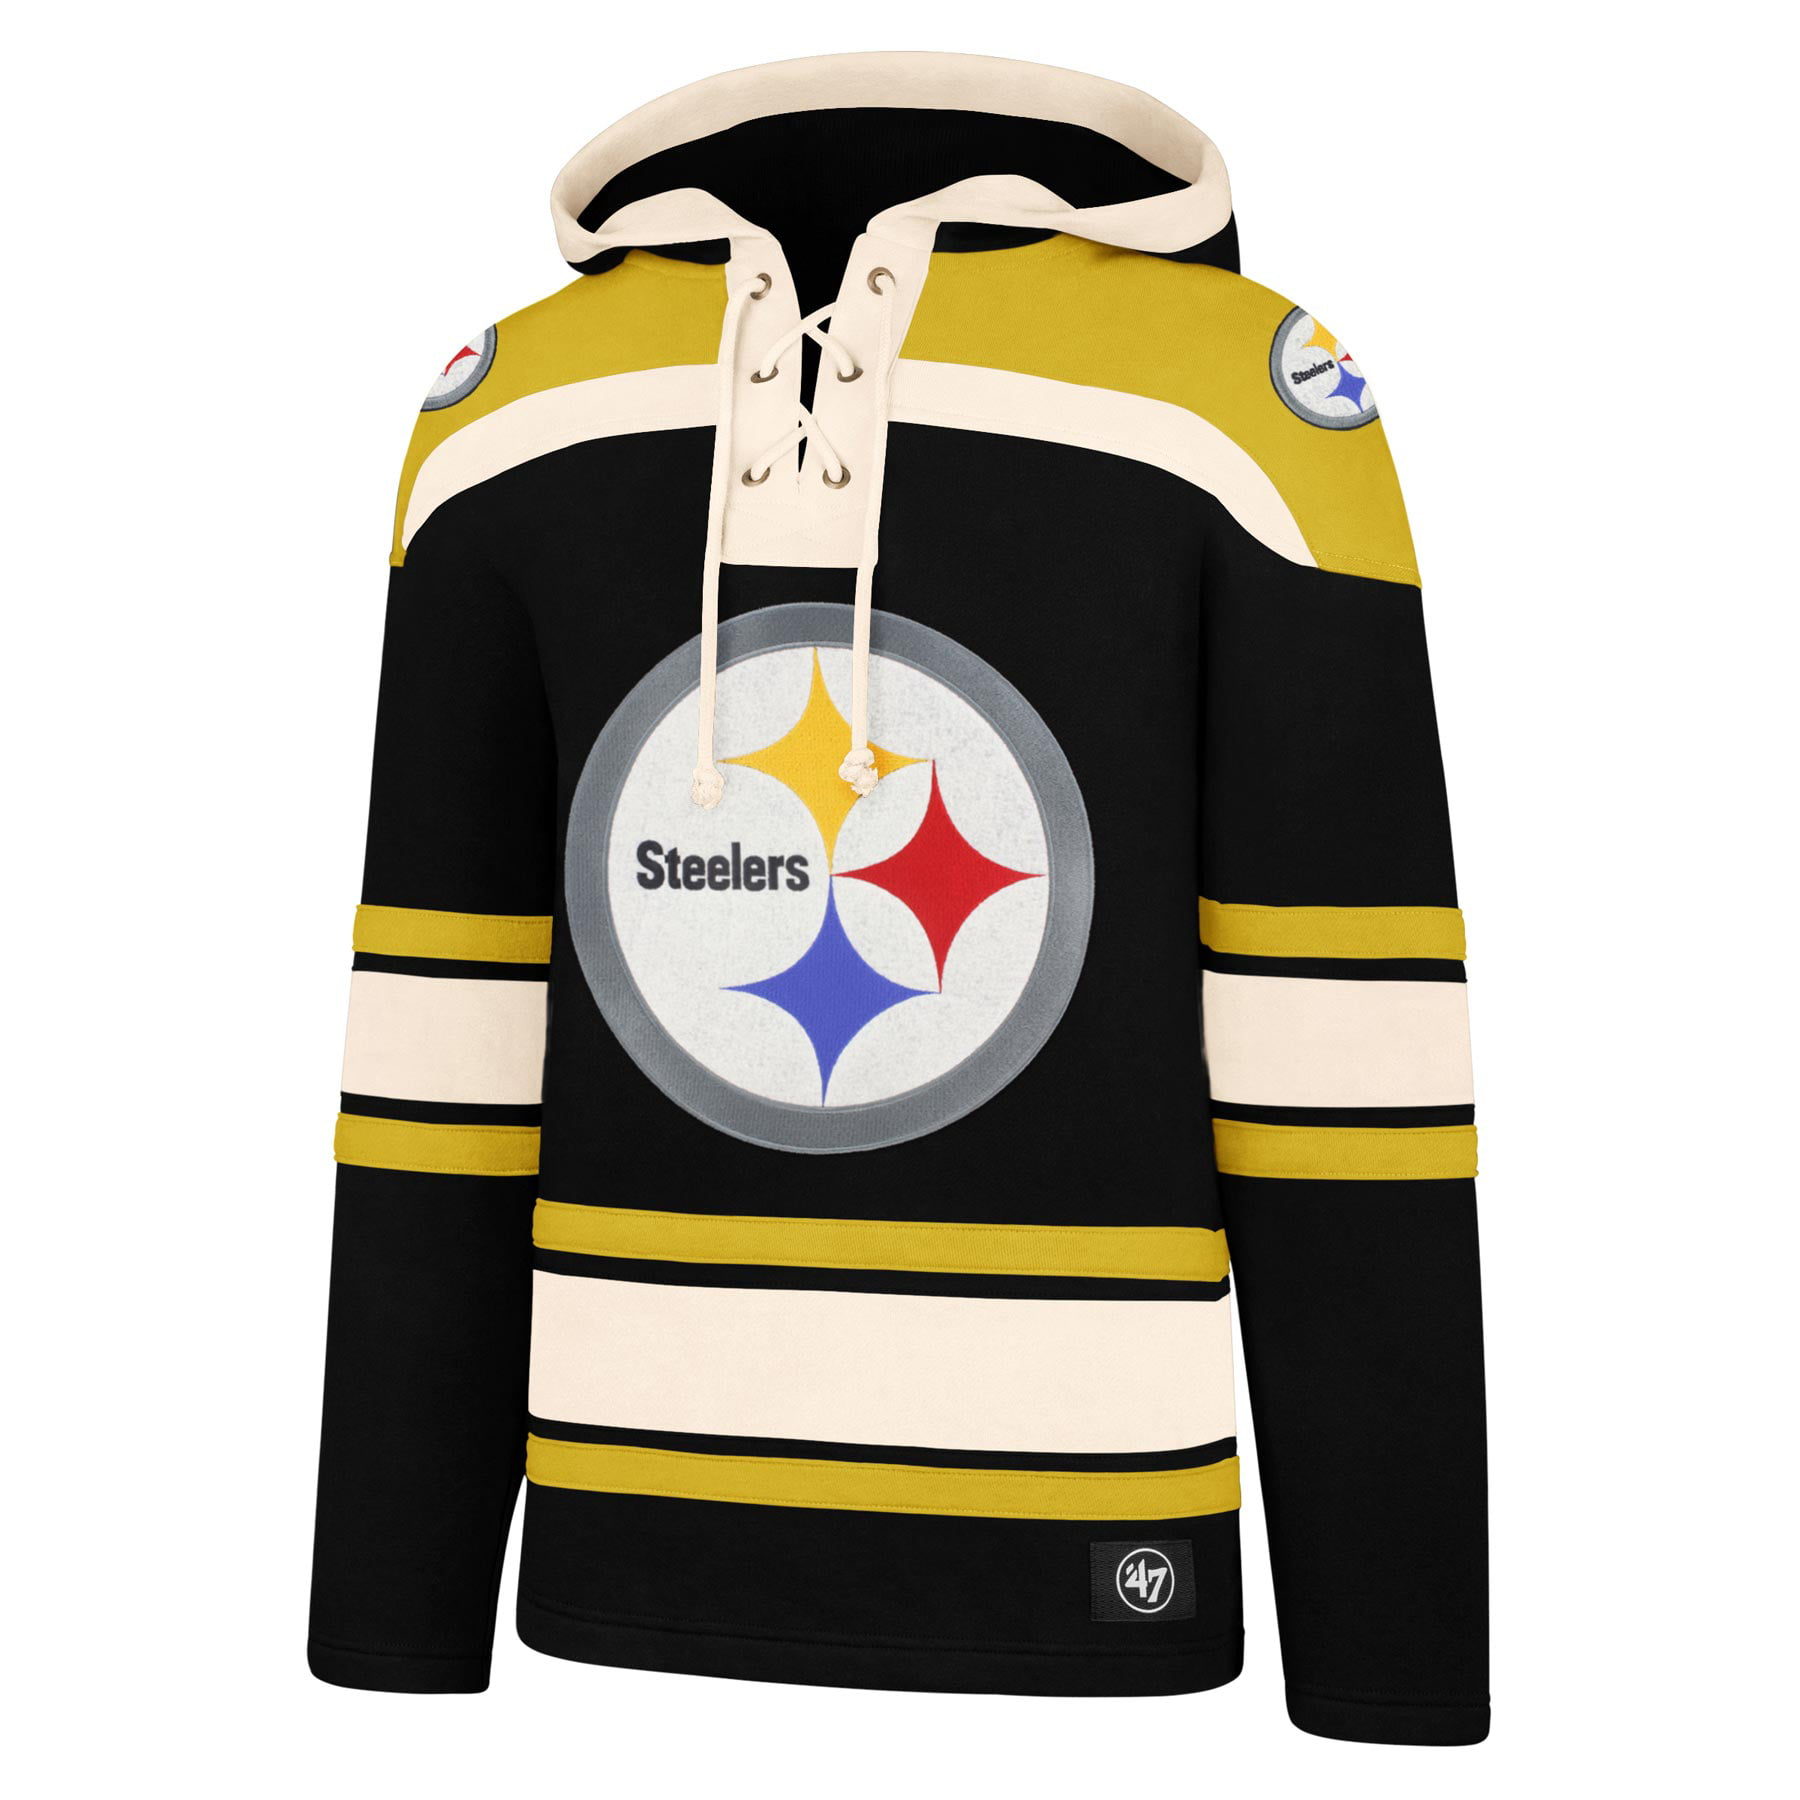 promo code abb21 f15ea Pittsburgh Steelers NFL '47 Heavyweight Jersey Lacer Hoodie ...